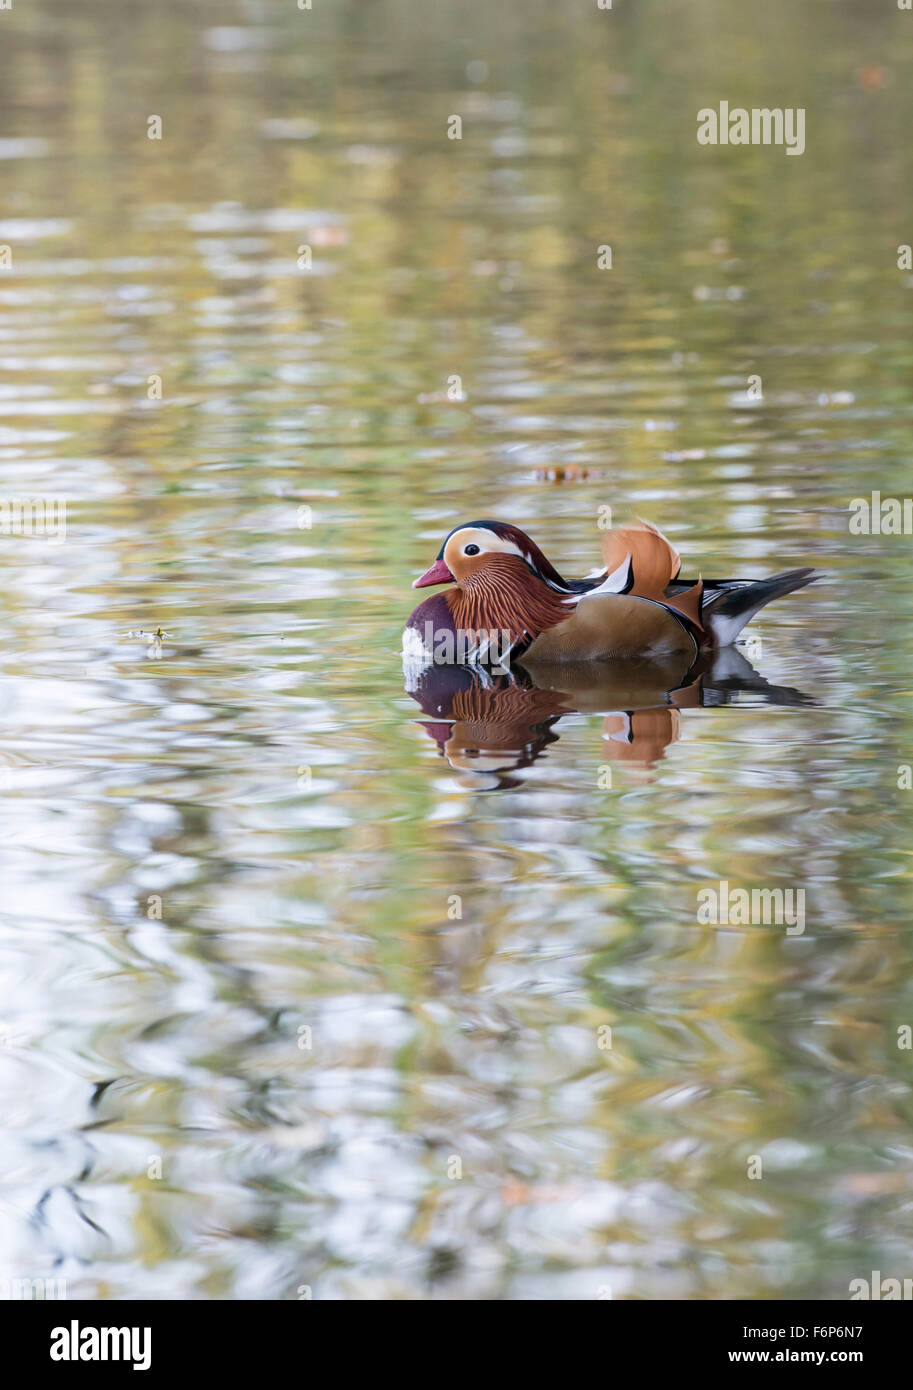 Mandarin duck (Aix galericulata) male (drake). The species is native to Asia, but breeds ferally in parts of Britain and Europe. Stock Photo